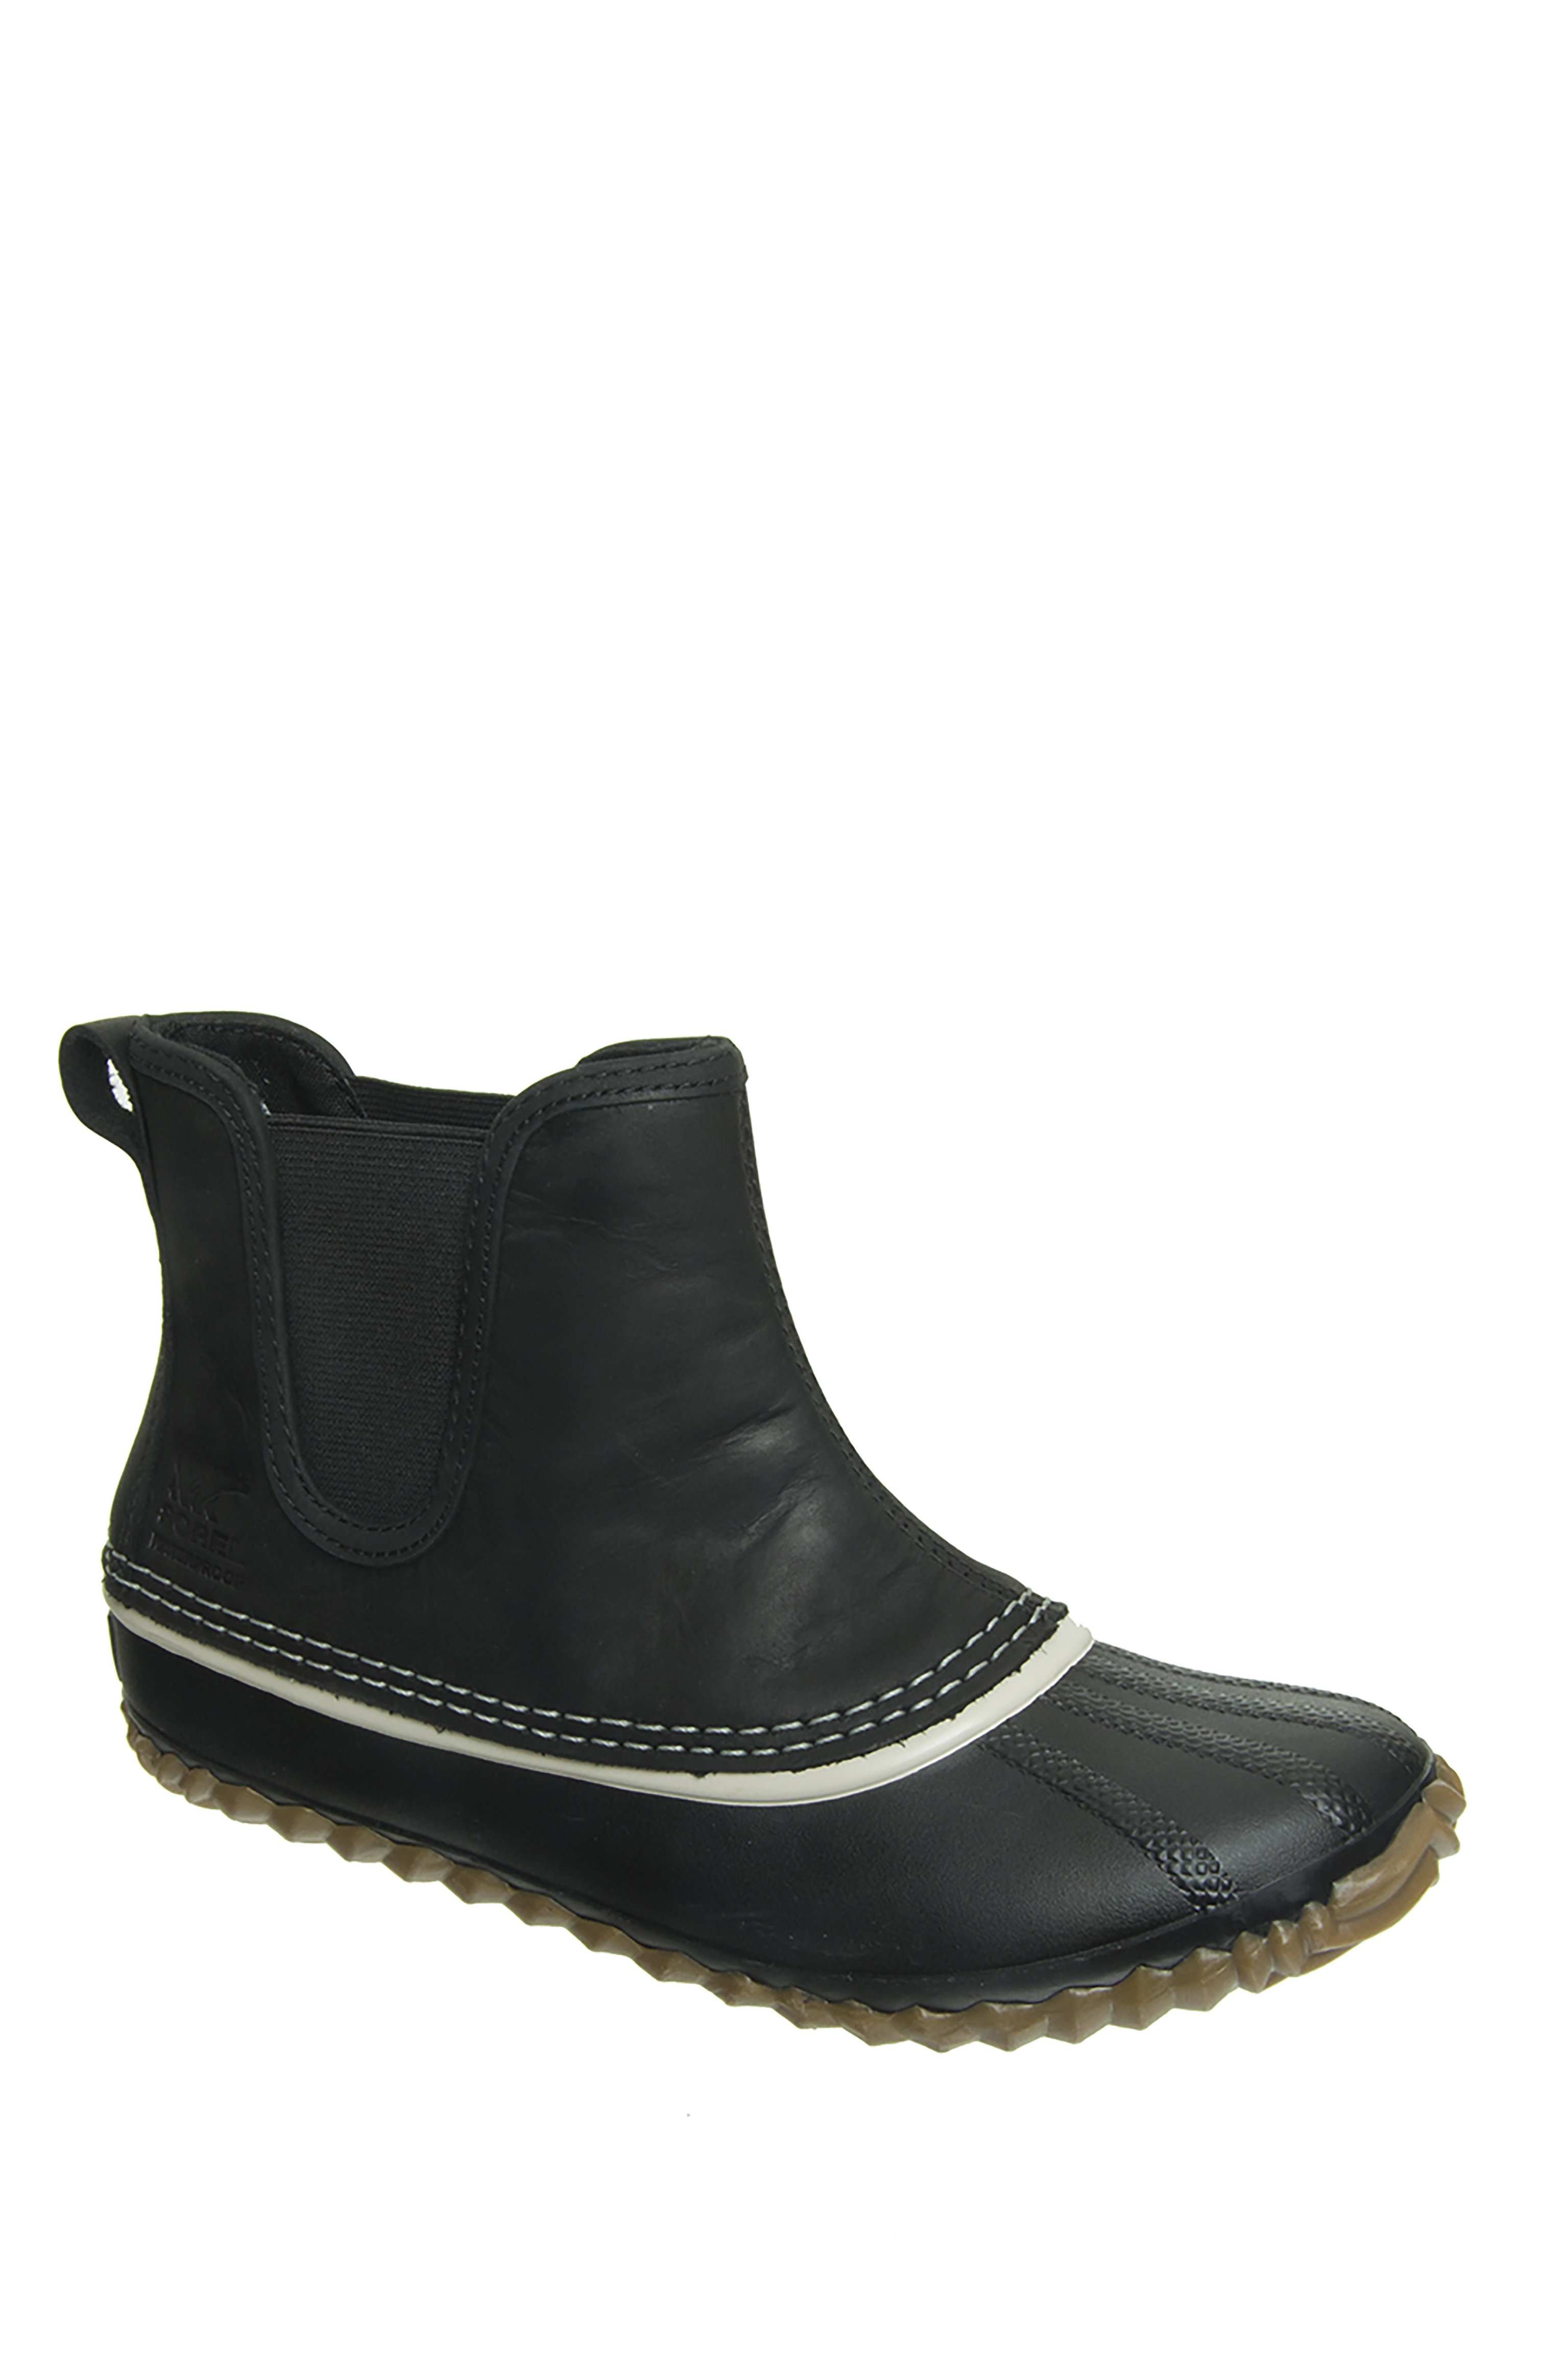 Sorel Out 'N About Chelsea Snow Boots - Black